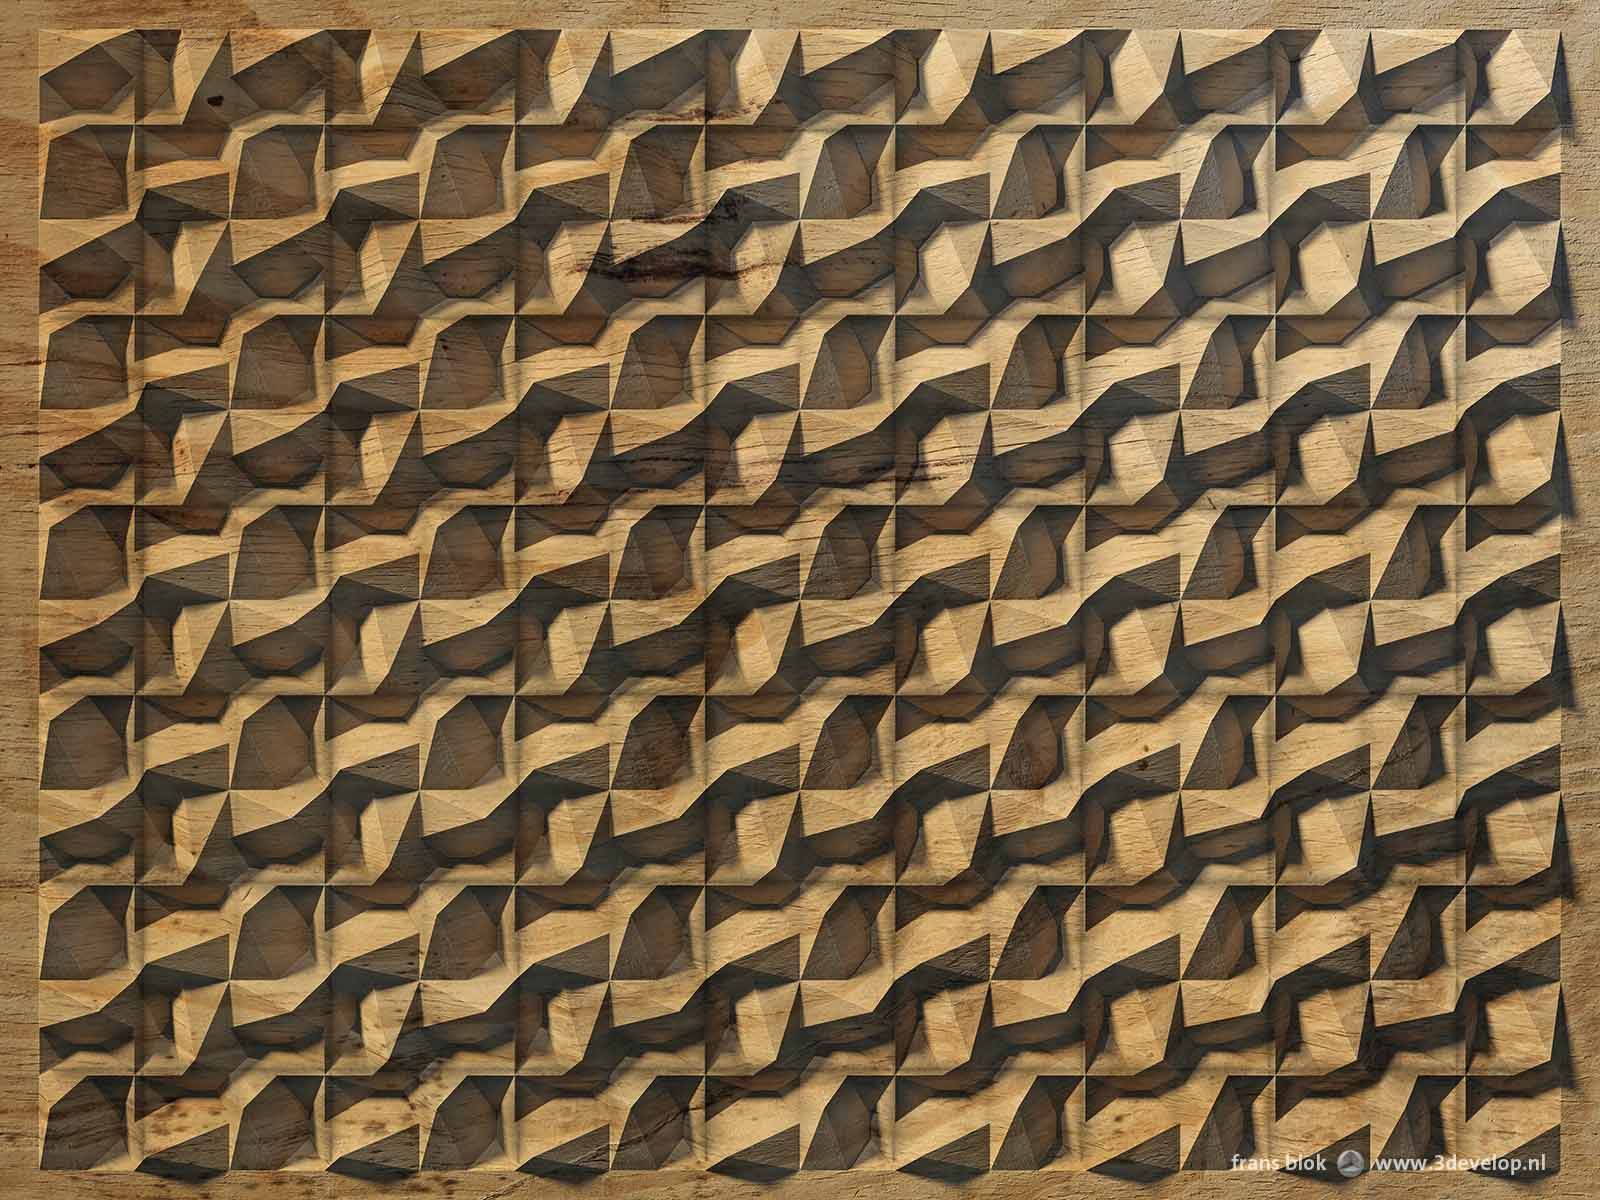 A virtual relief, creating the illusion of depth on a flat surface, with a kind of wave pattern in a square grid, done as wood carving